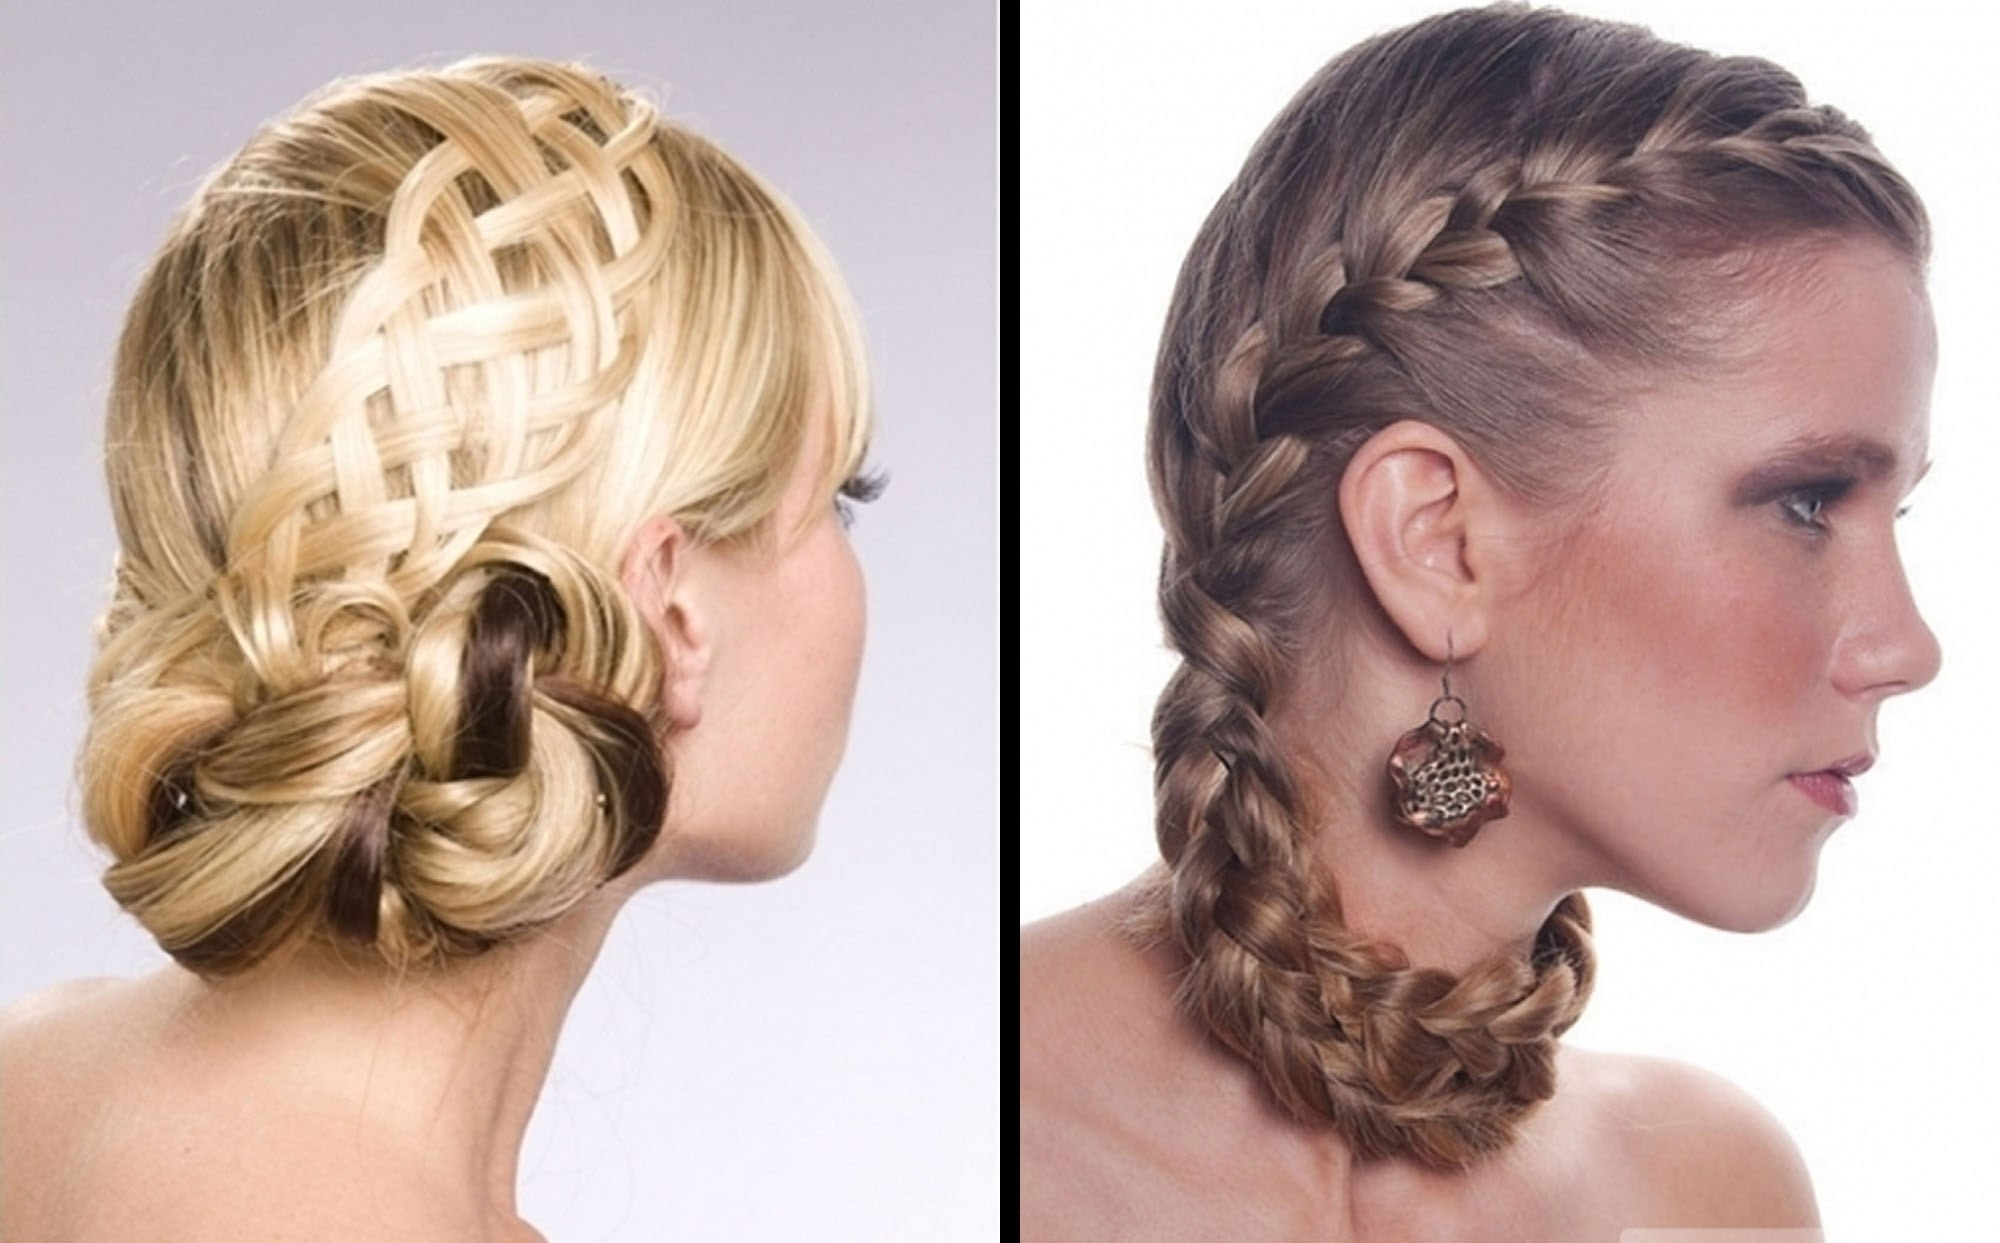 Hairstyles For Short Hair Prom Easy | Medium Hair Styles Ideas – 35621 With Homecoming Updos For Medium Length Hair (View 3 of 15)